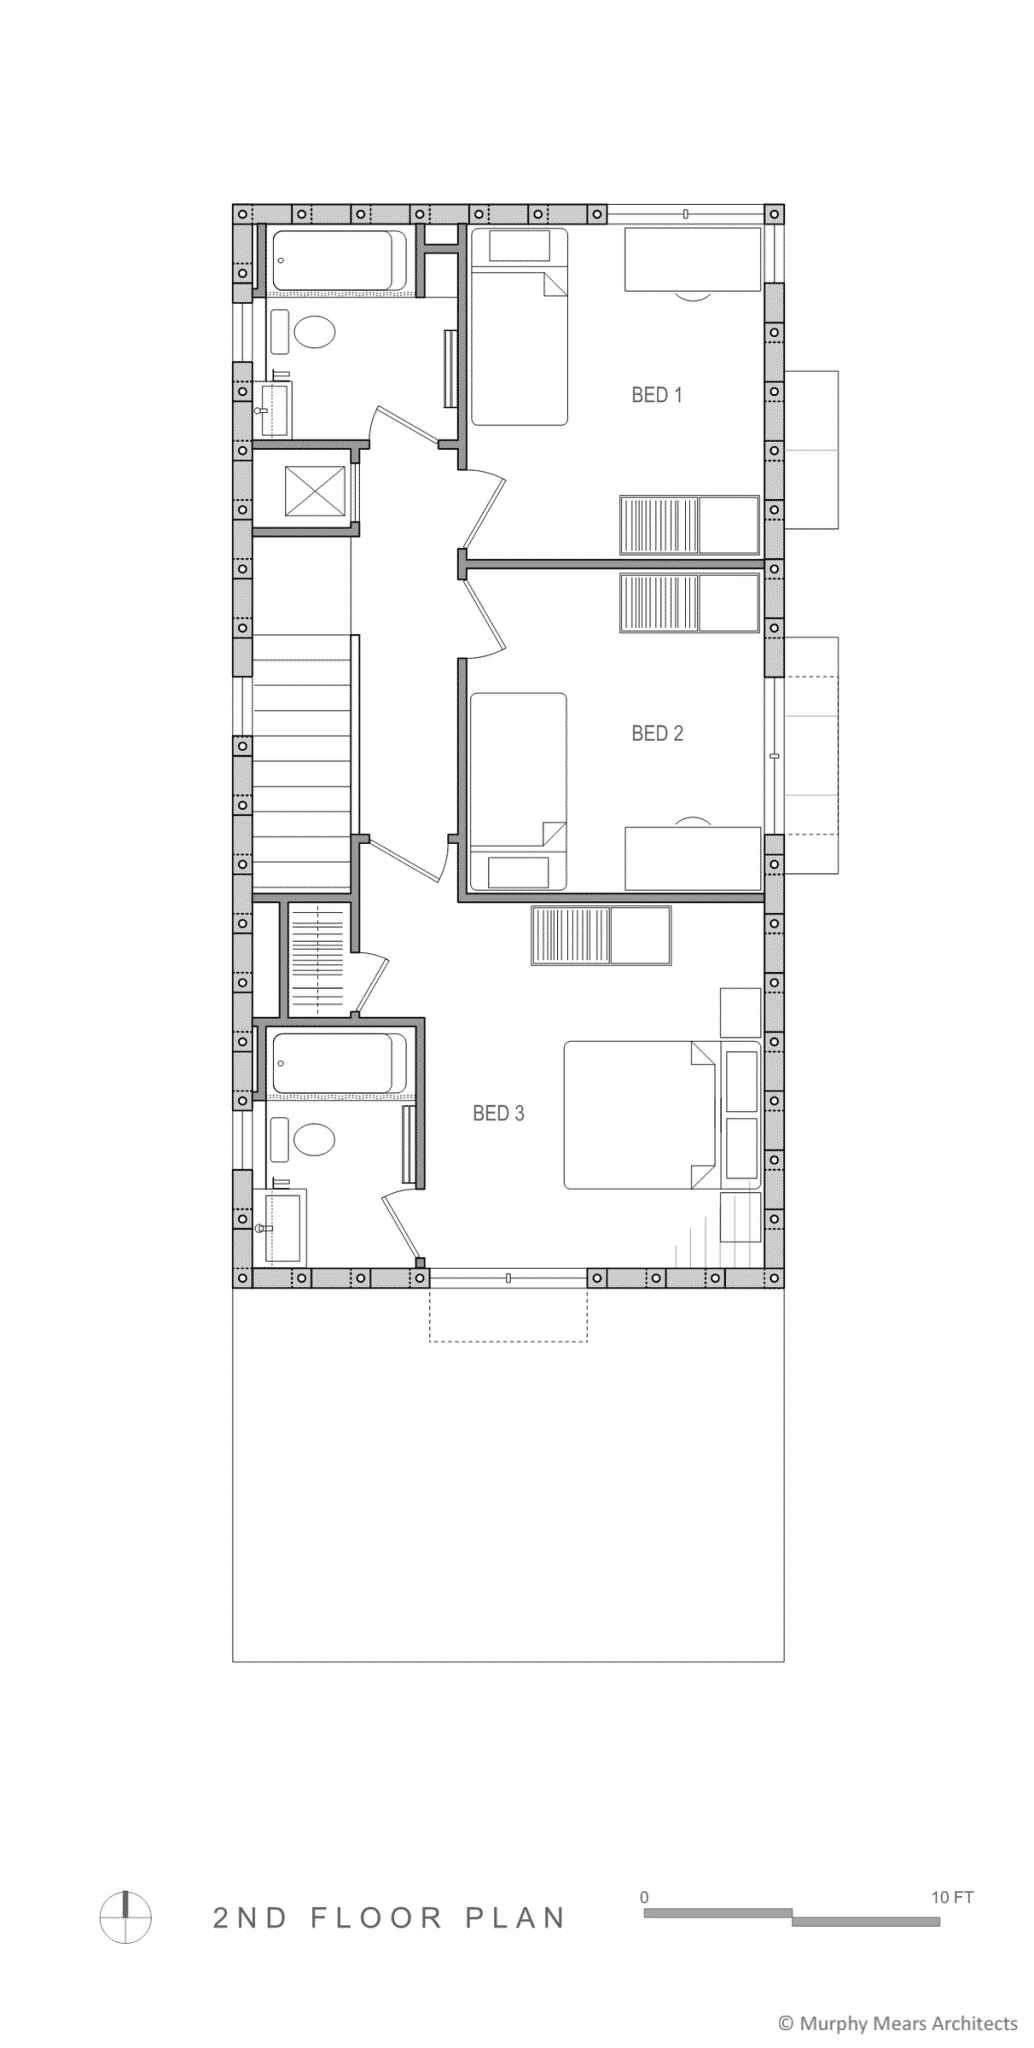 Second floor bedrooms separated by affordable wood partitions within the AAC block structure.